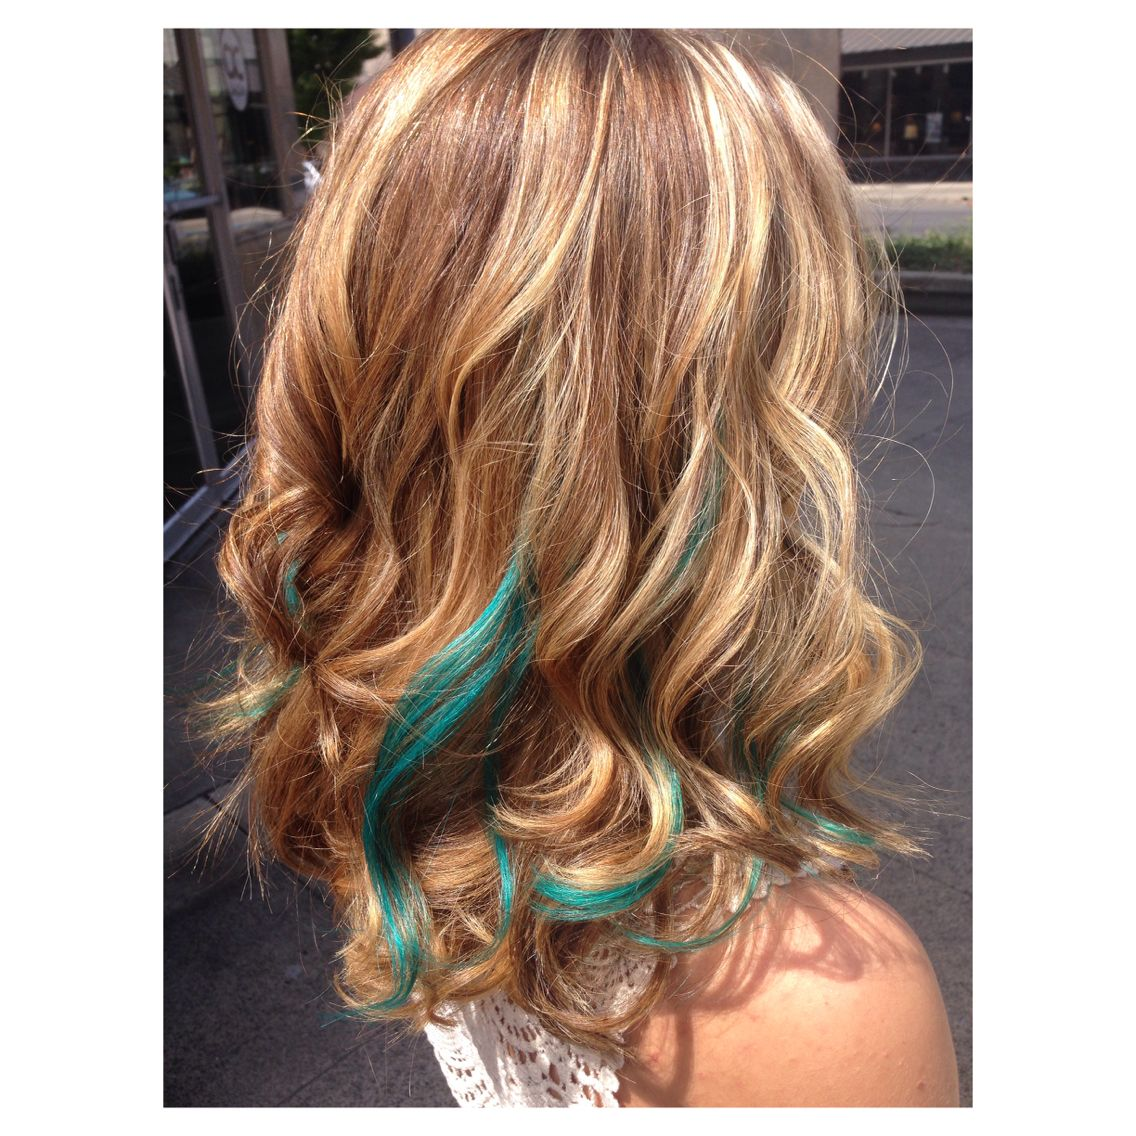 Blonde Highlights Medium Low Lights And Turquoise Streak